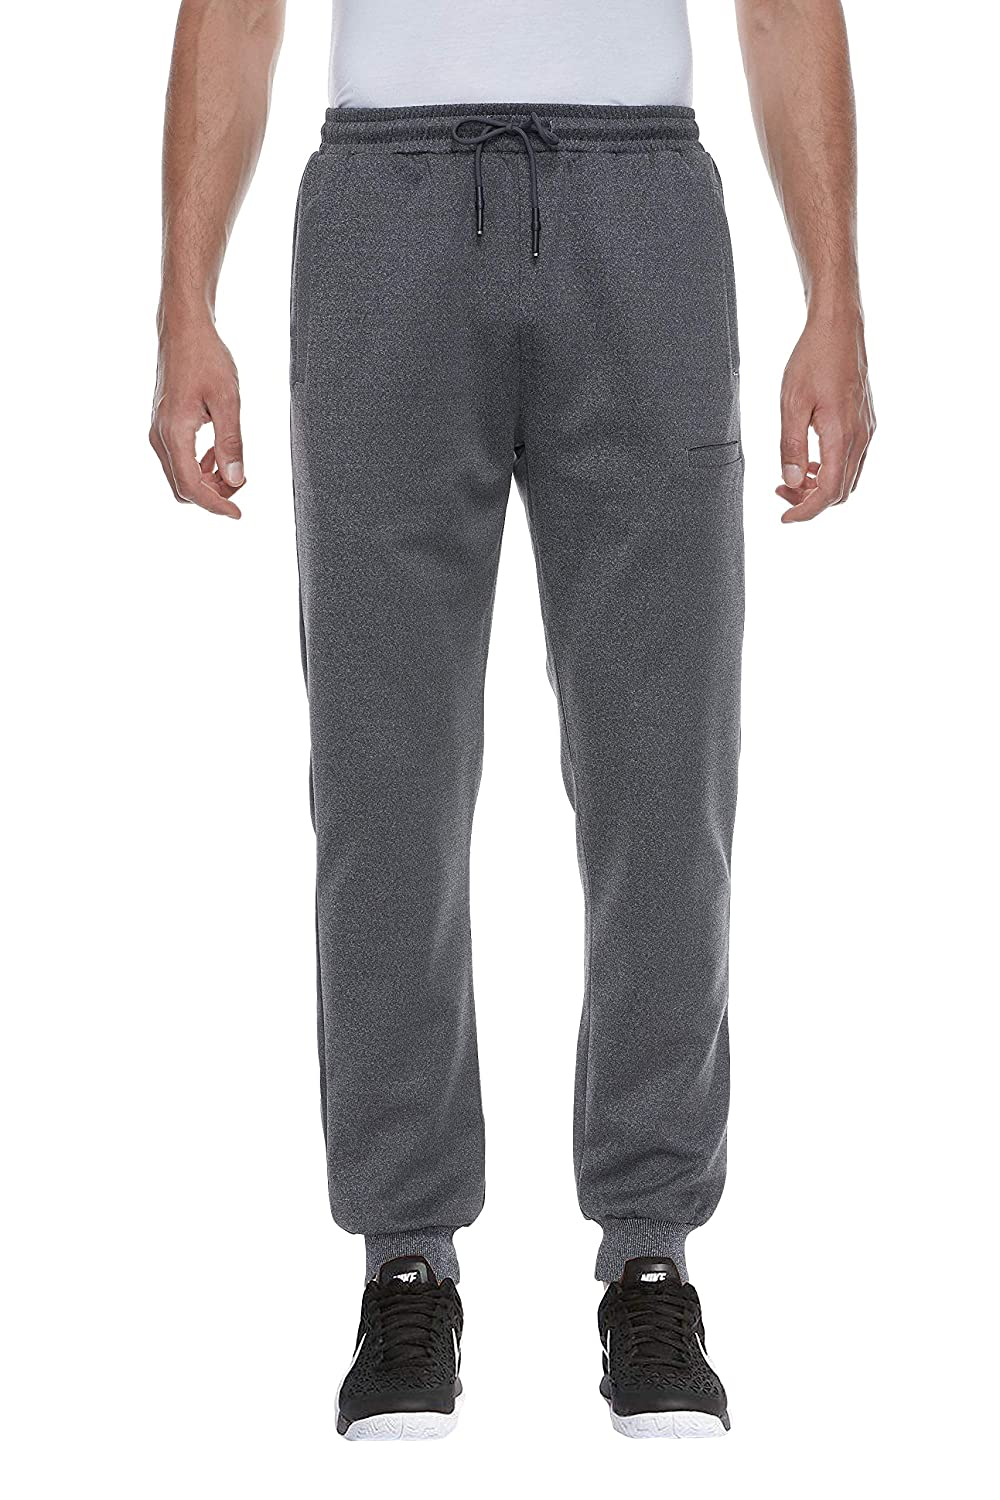 Light Weight Dry-Fit Little Donkey Andy Mens Jersey Sweatpants